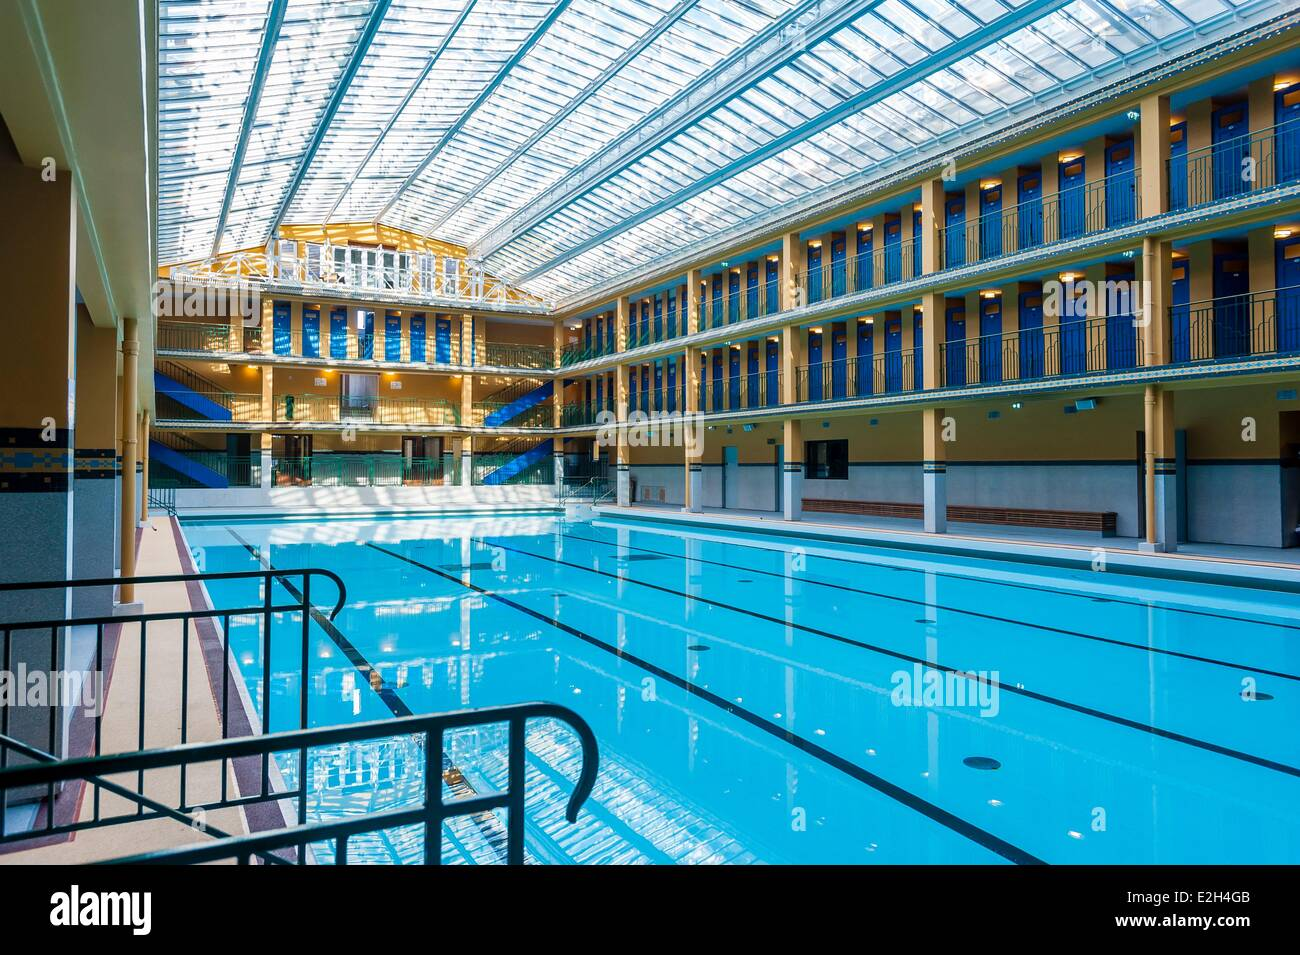 France Paris Hotel Molitor Swimming Pool Opening In May 2014 Listed Stock Photo 70447563 Alamy